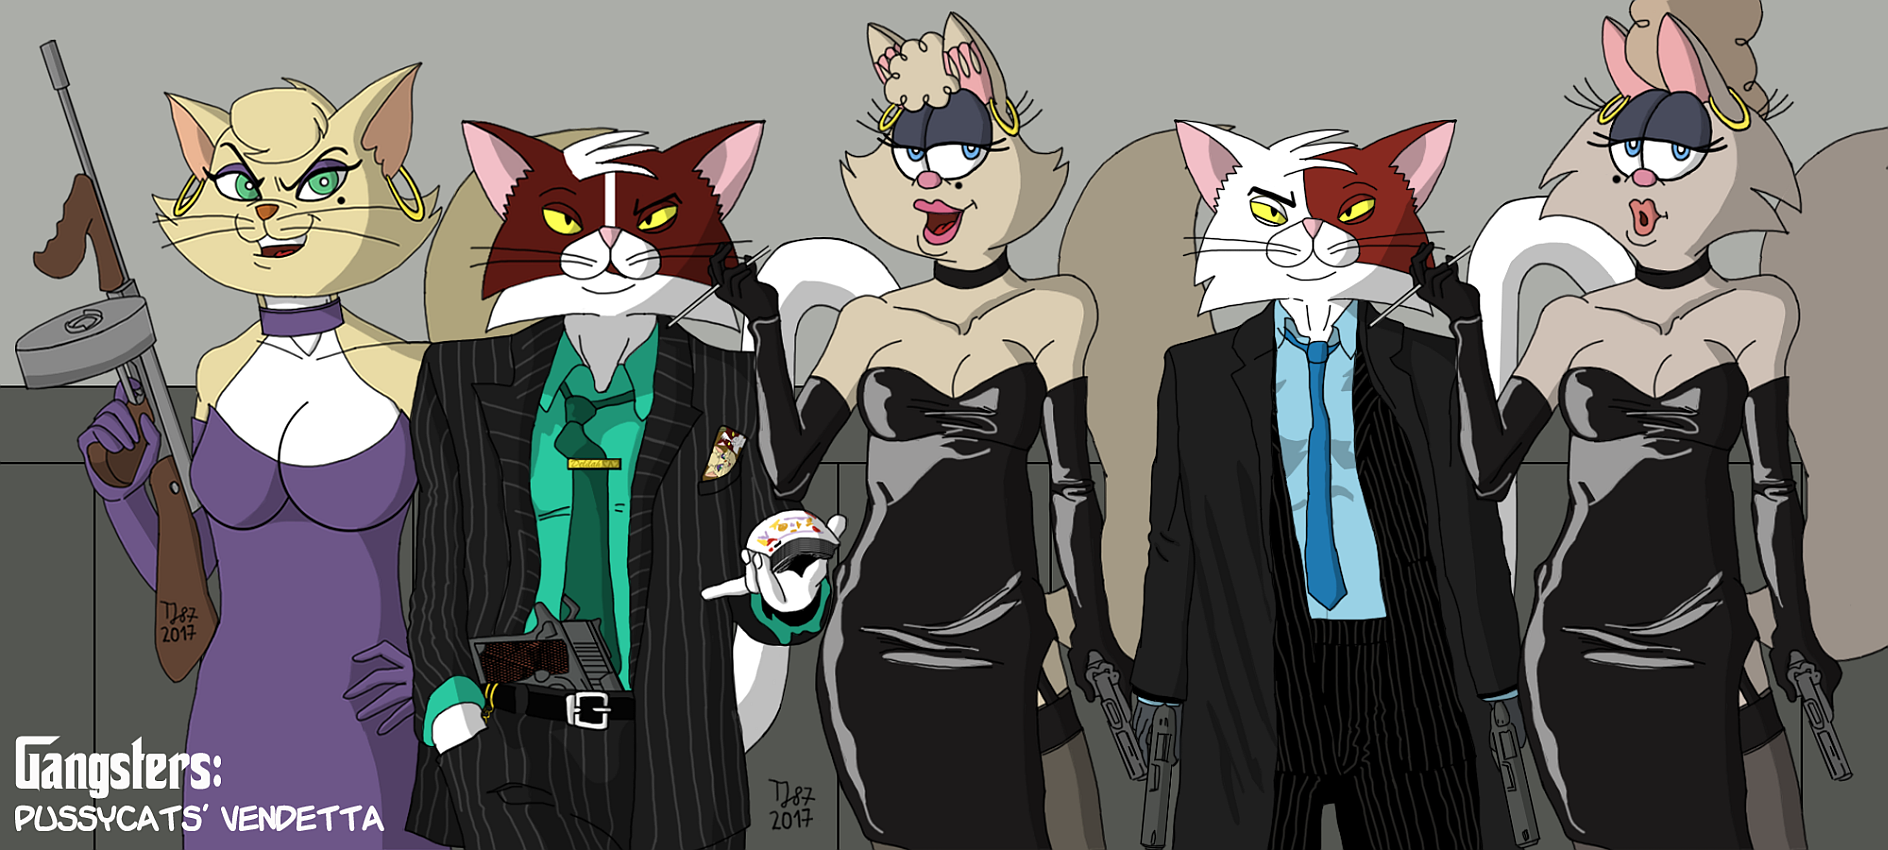 The Pussycats' Vendetta: Family Picture (color) by TeeJay87